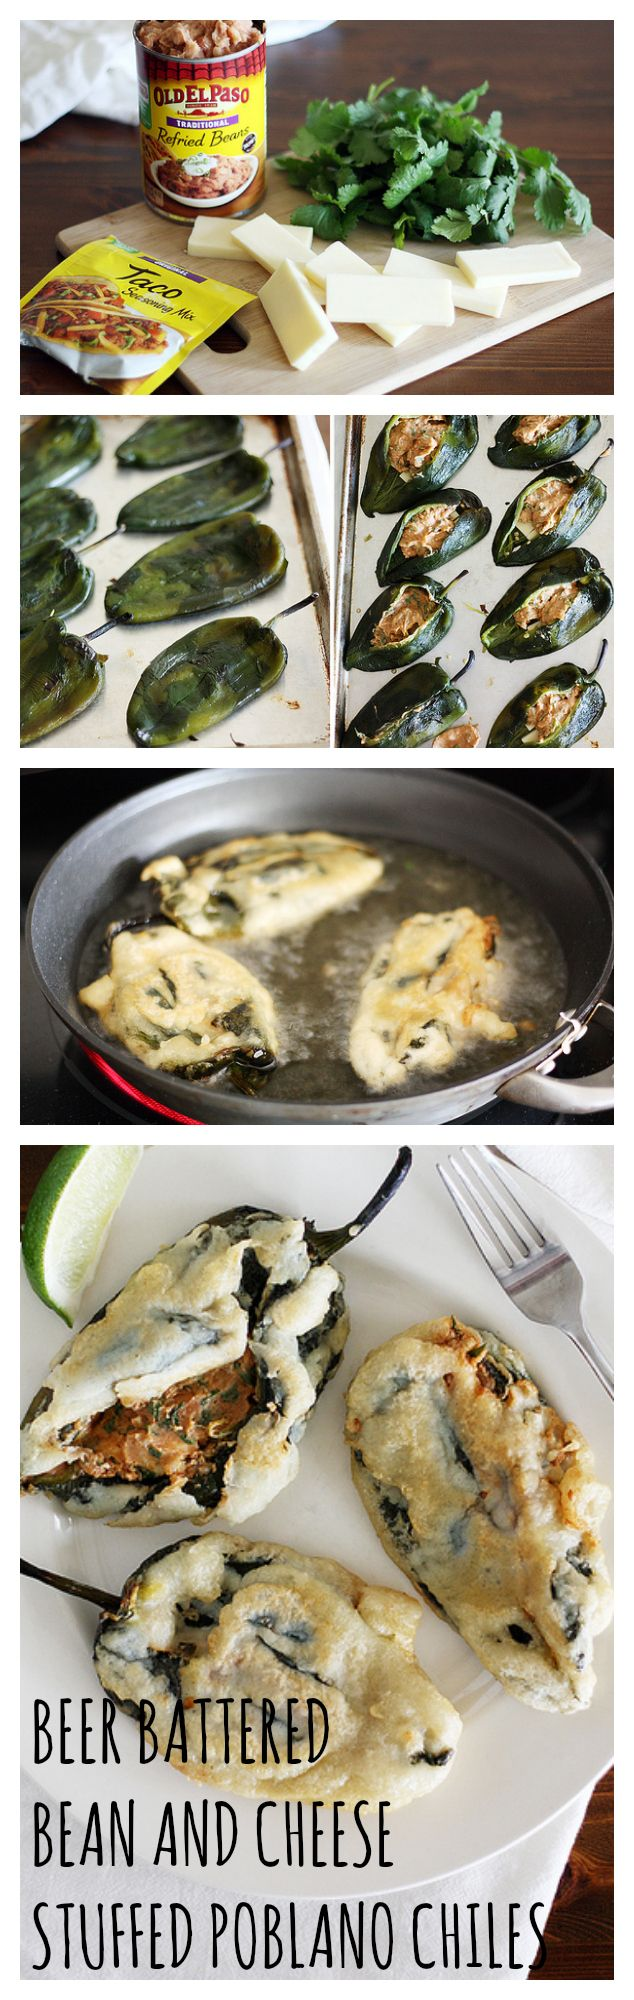 Beer Battered Bean and Cheese Stuffed Poblano Chiles | Recipe